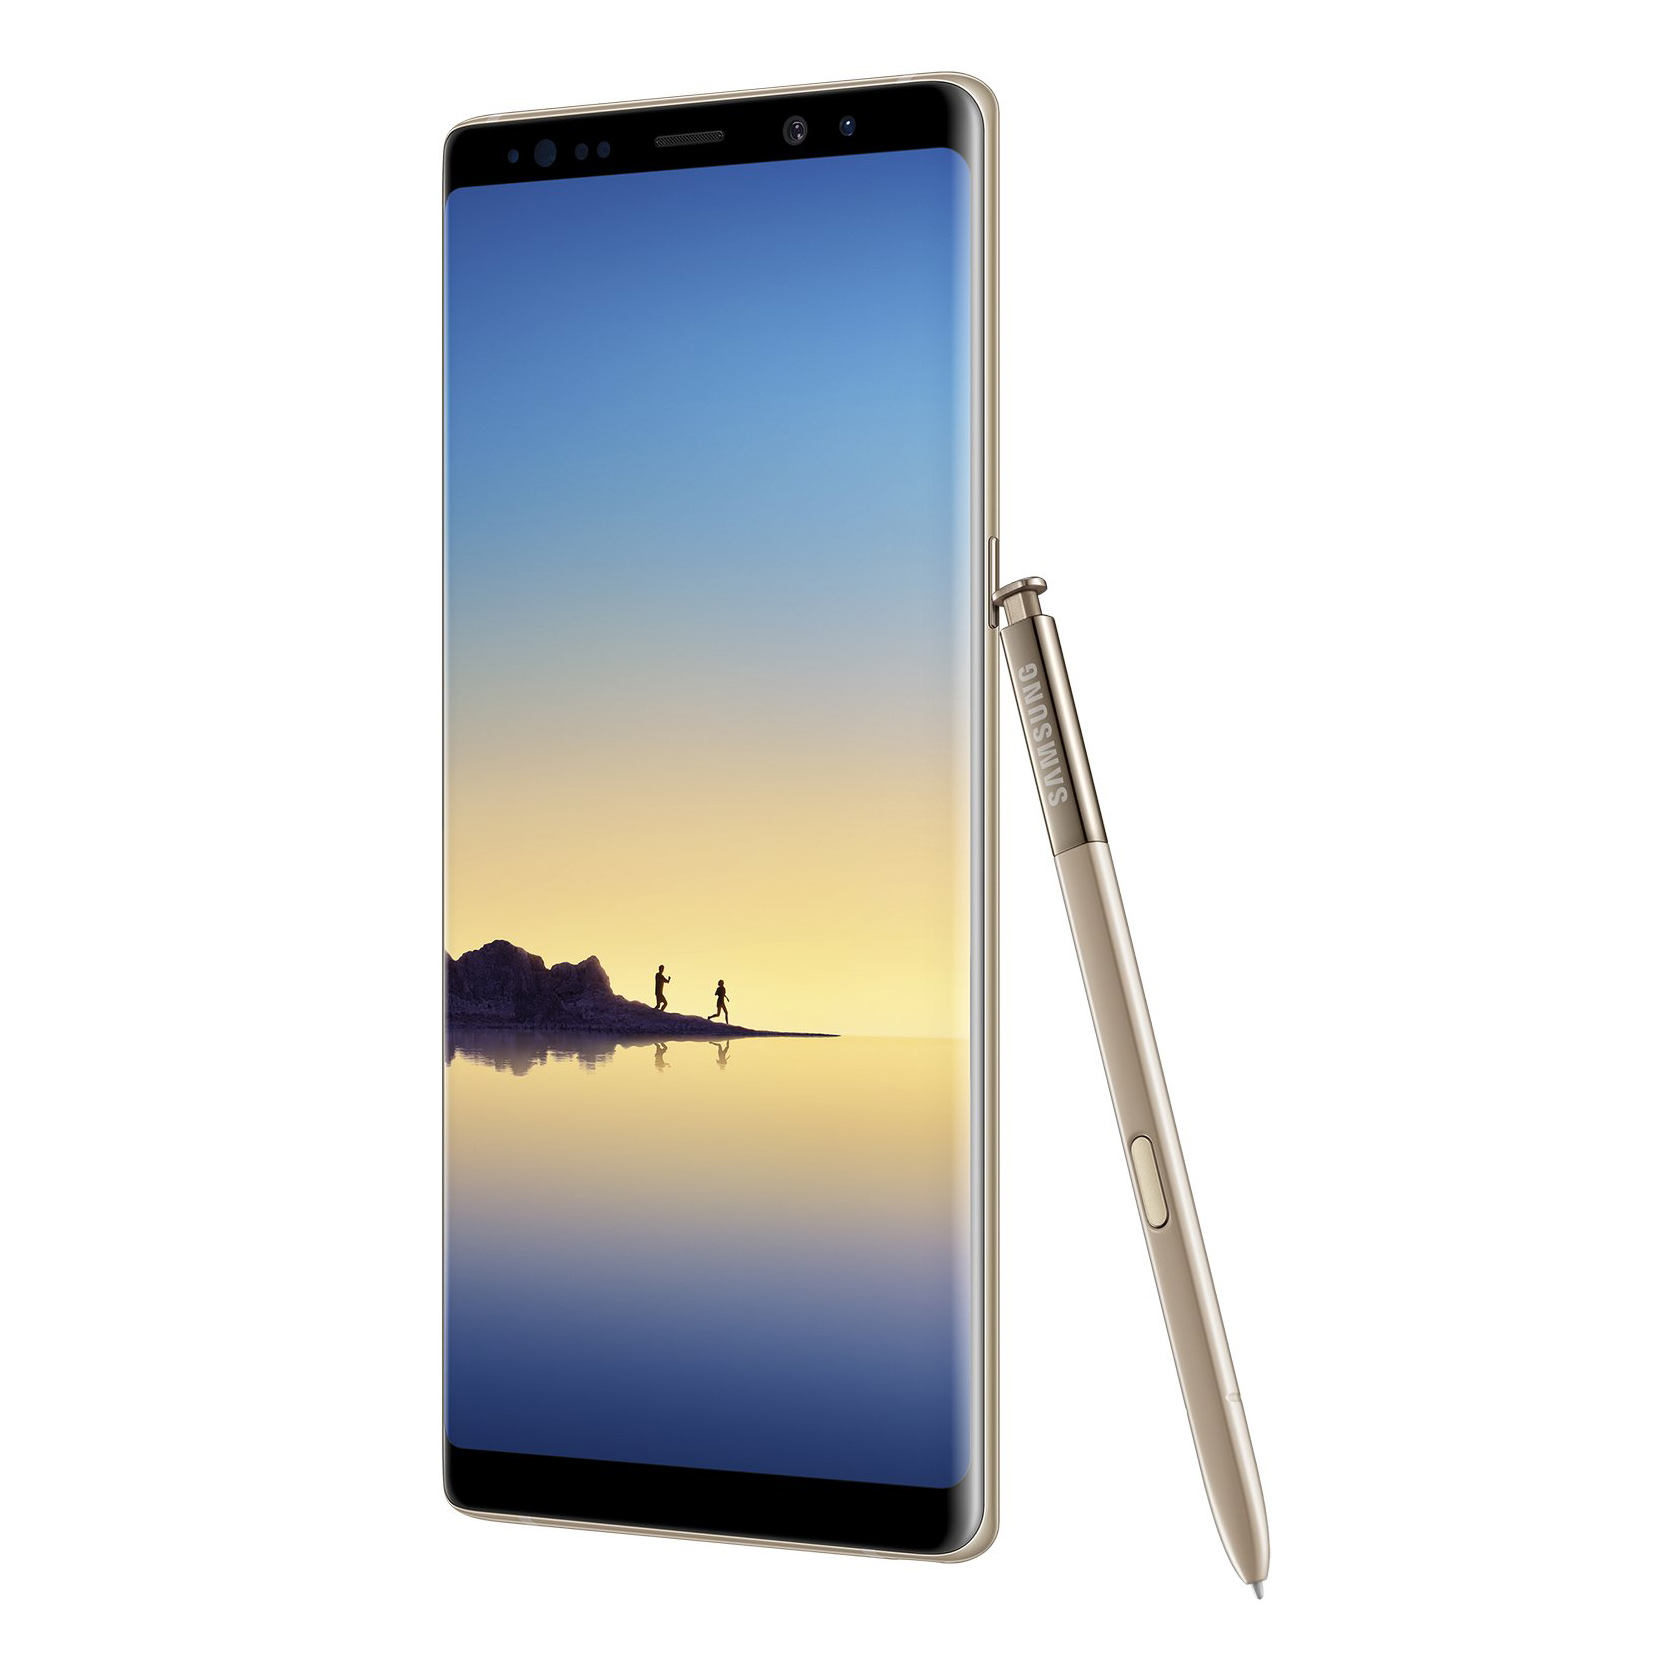 smartfon samsung galaxy note 8 bluetooth wifi gps nfc lte 3g galileo a gps dualsim 64gb android. Black Bedroom Furniture Sets. Home Design Ideas